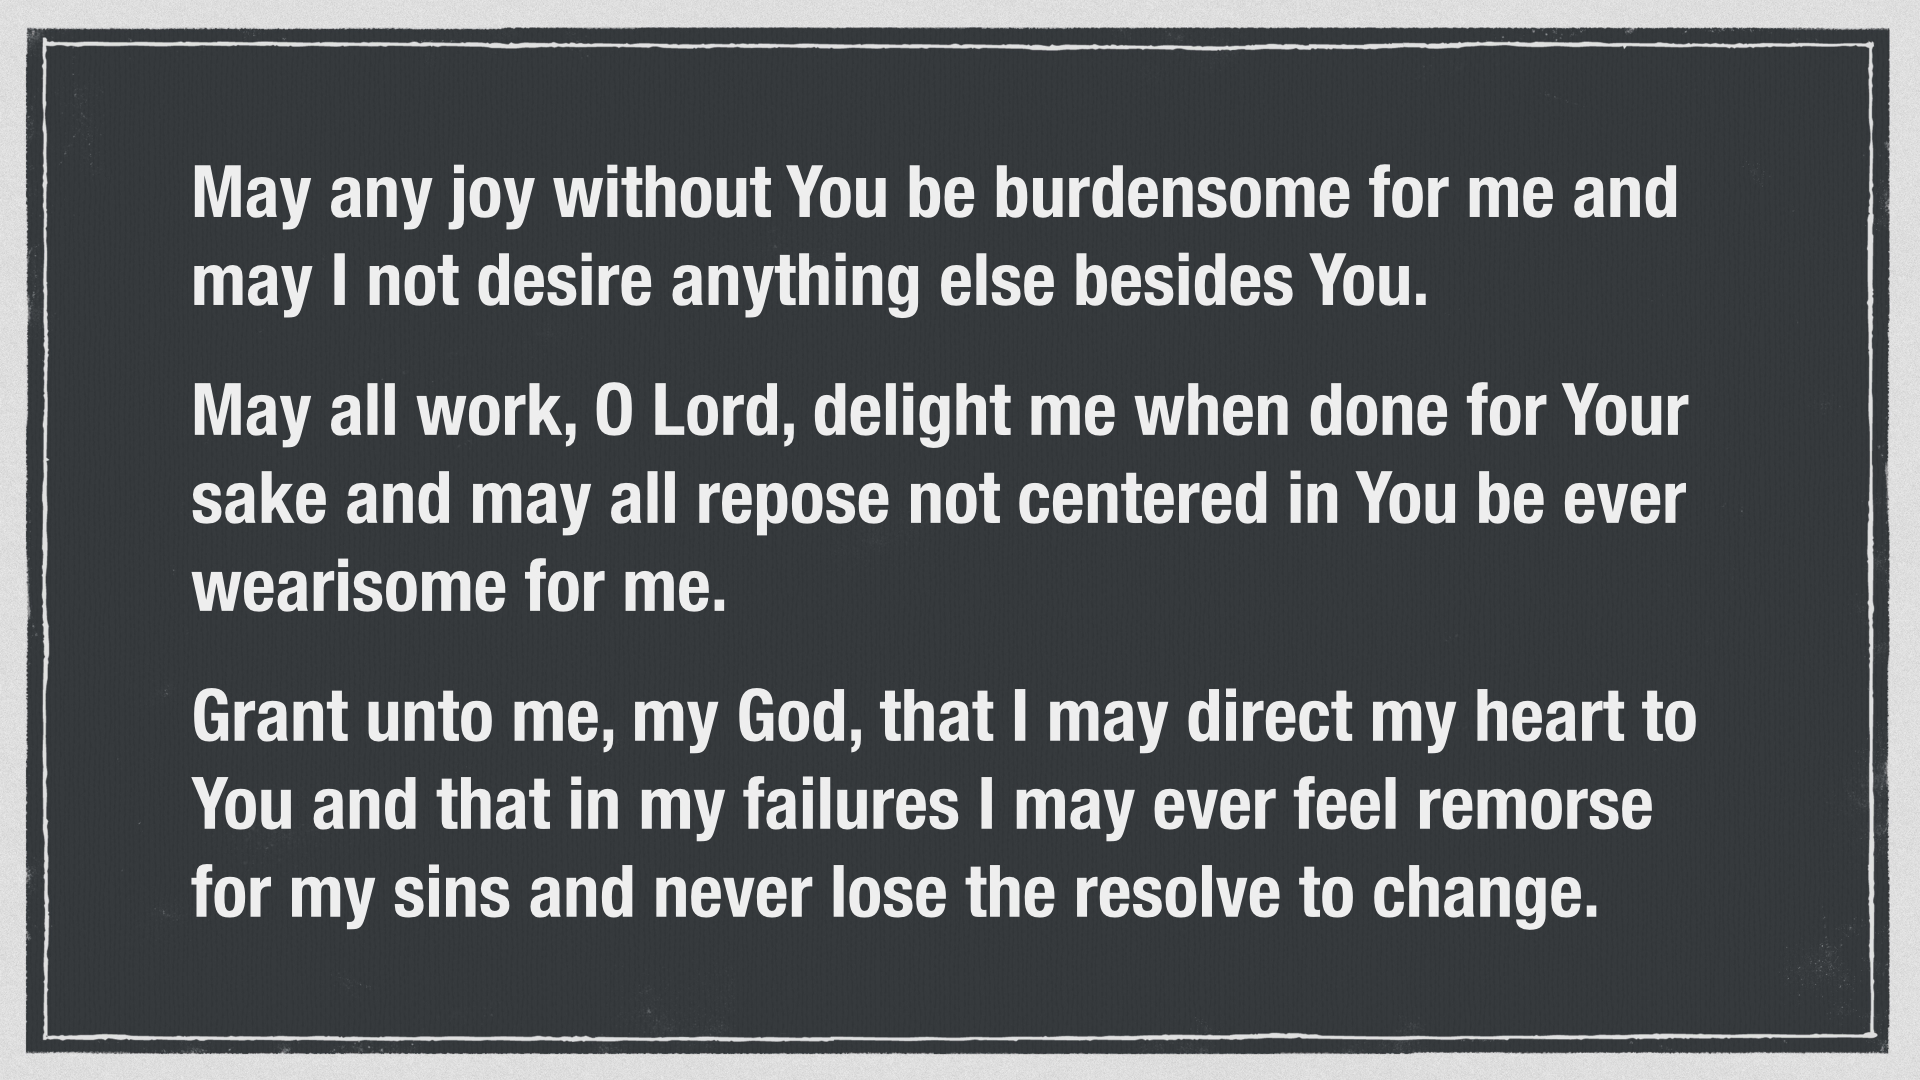 Prayer of St. Thomas Aquinas for ordering life wisely.005.jpg